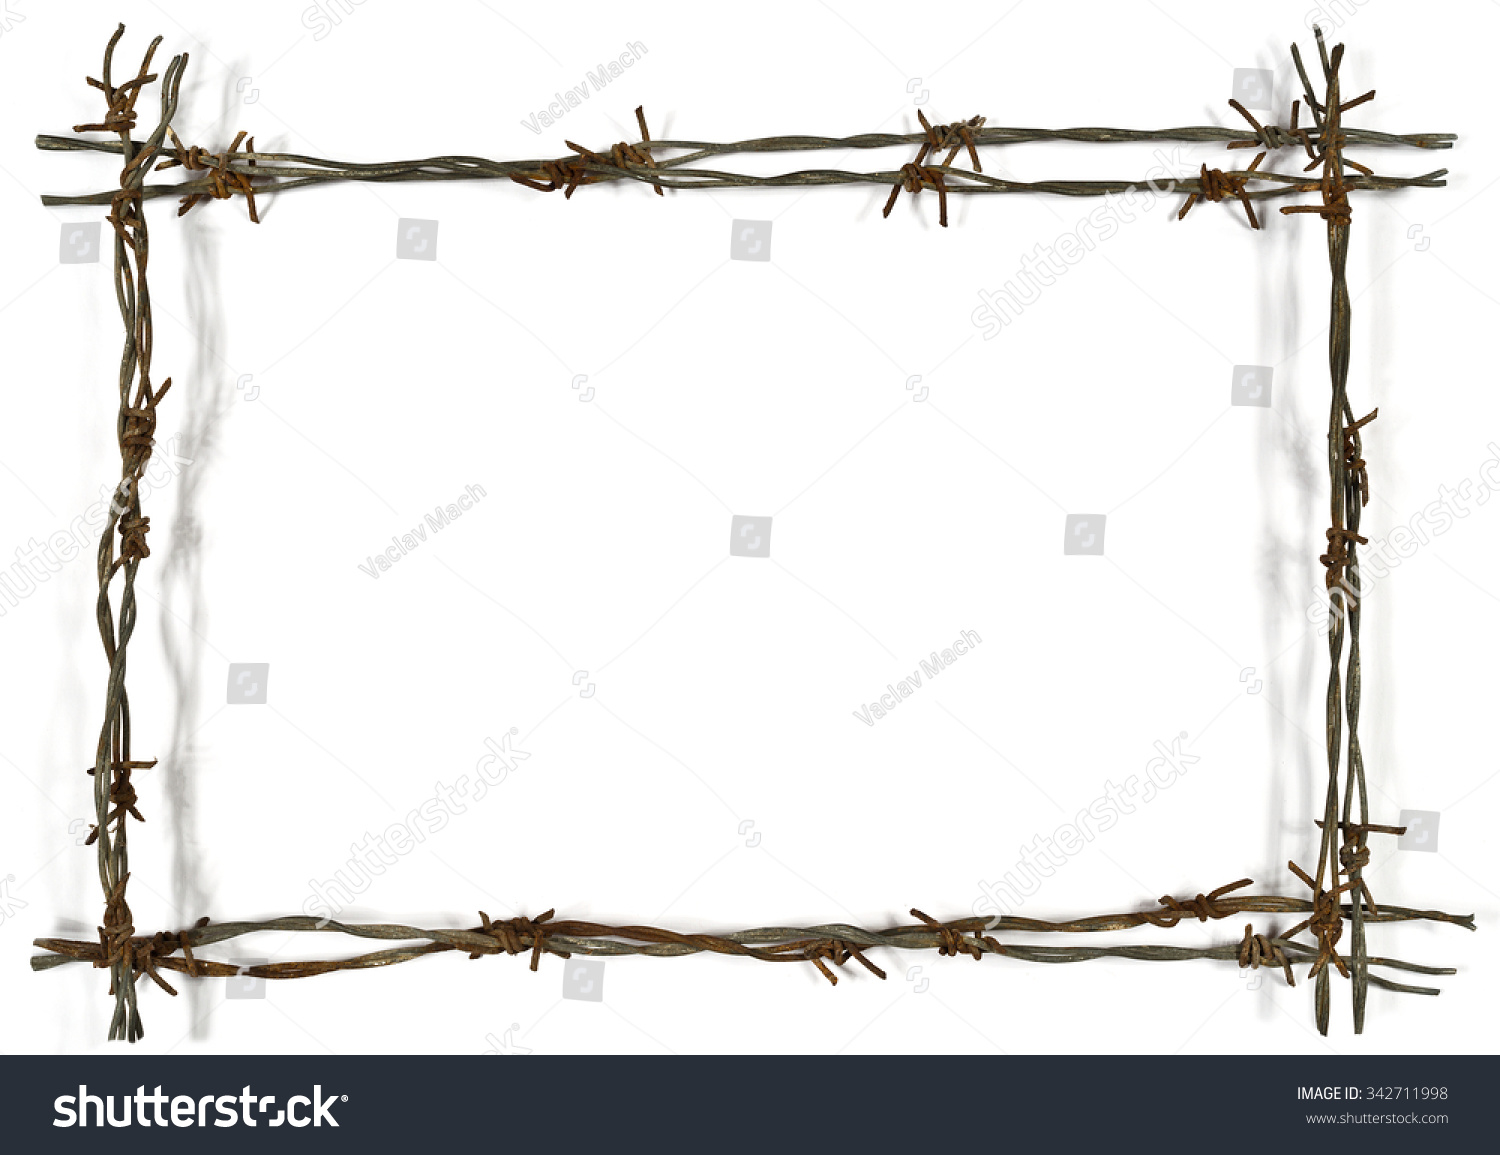 Barbed Wire Diagram - free download wiring diagrams